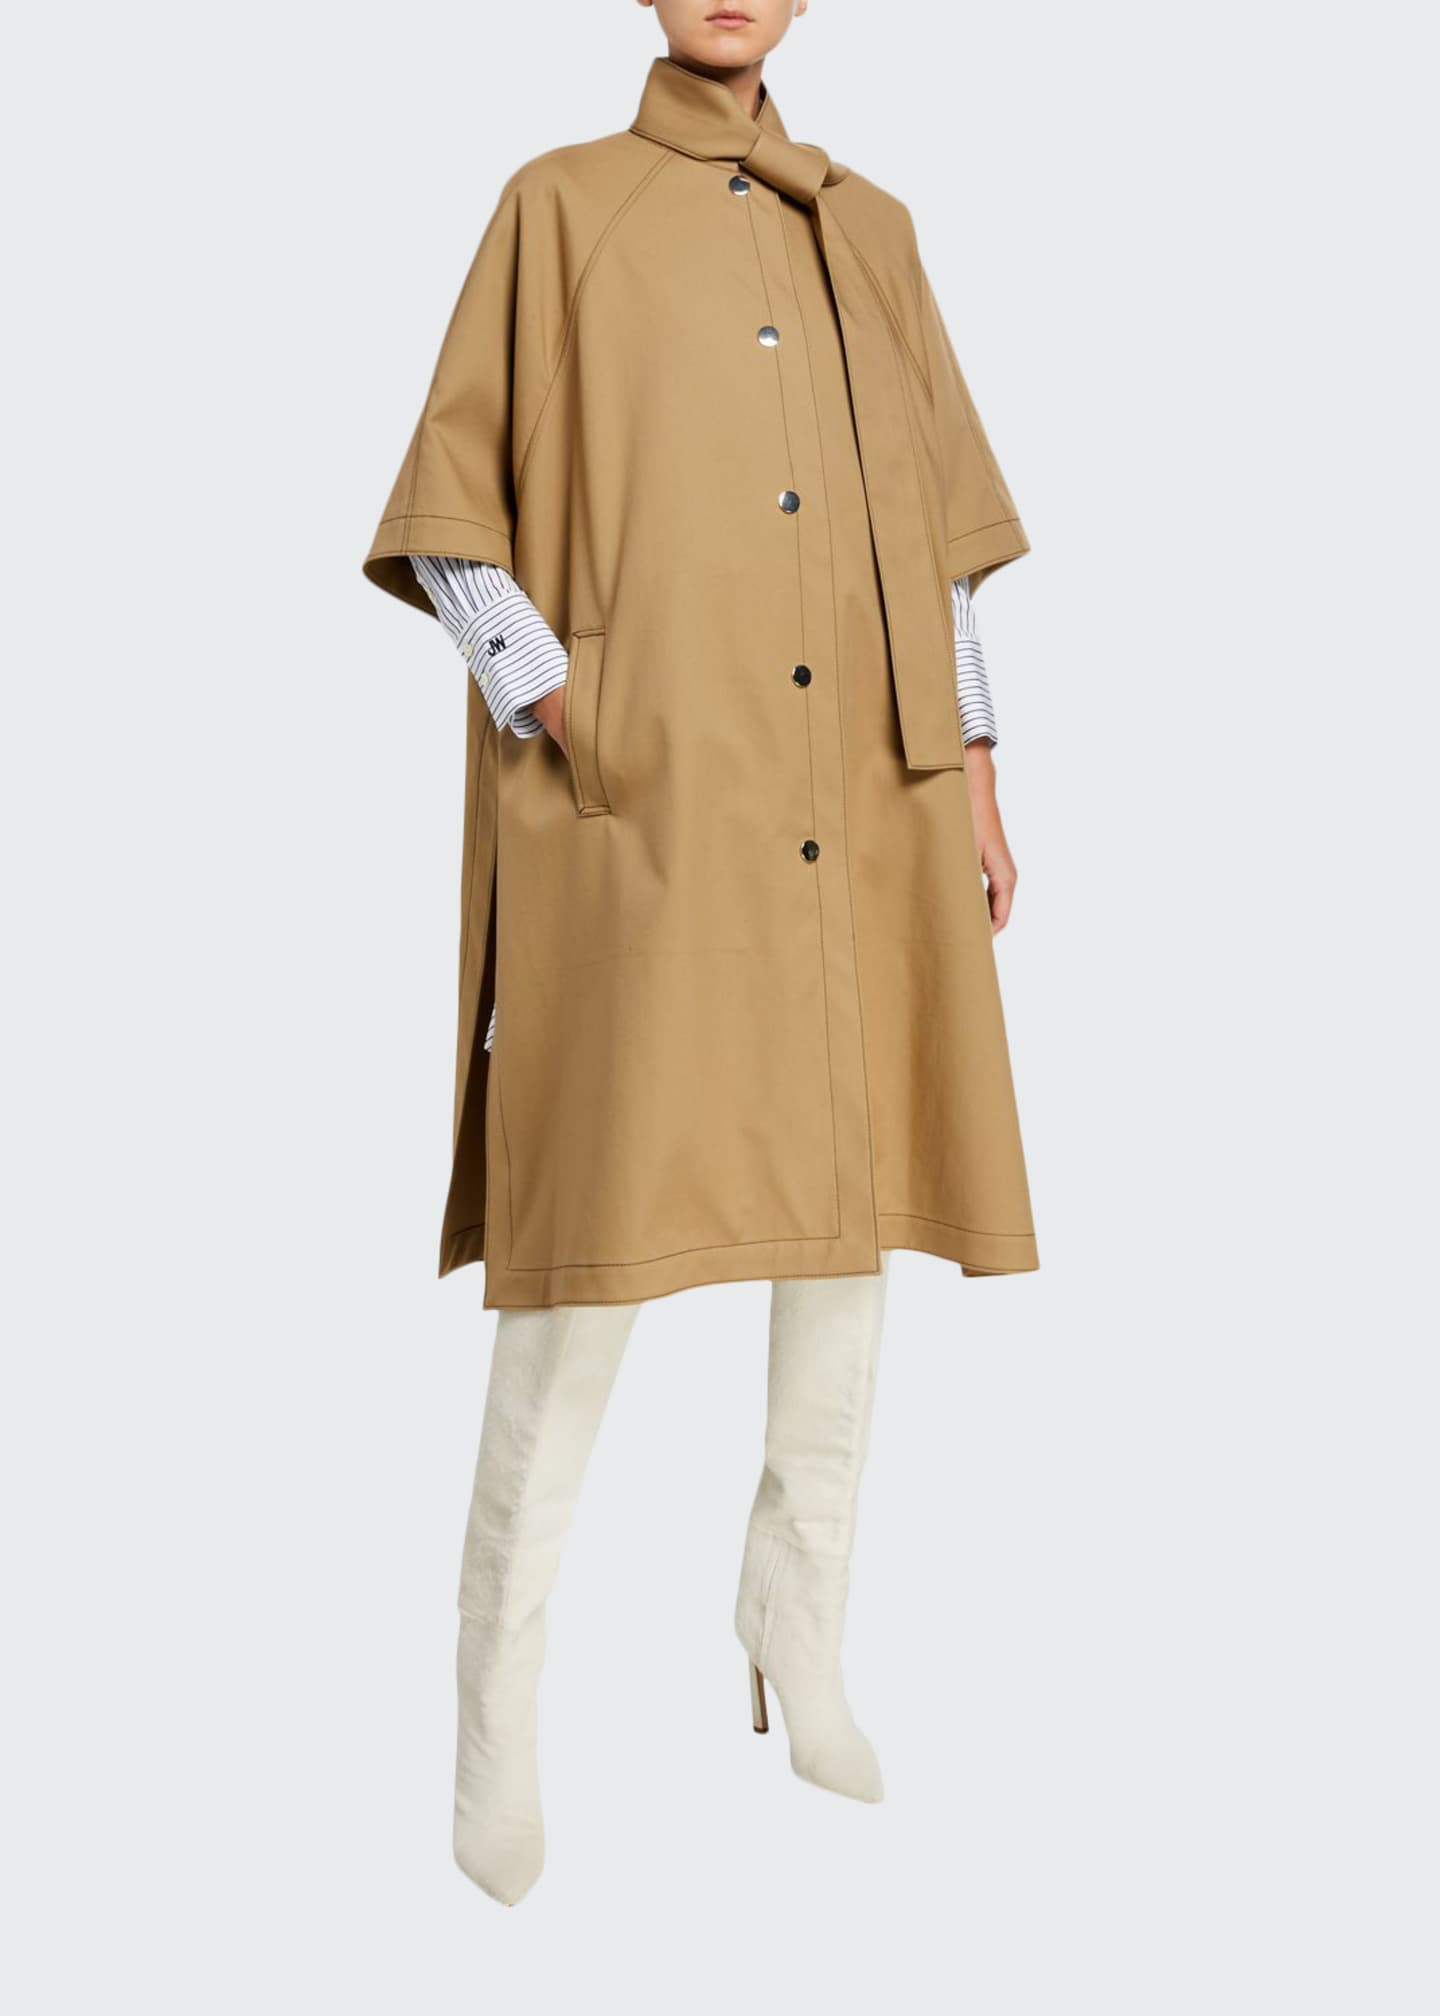 Jason Wu Button-Front Tie-Neck Cotton Rain Coat